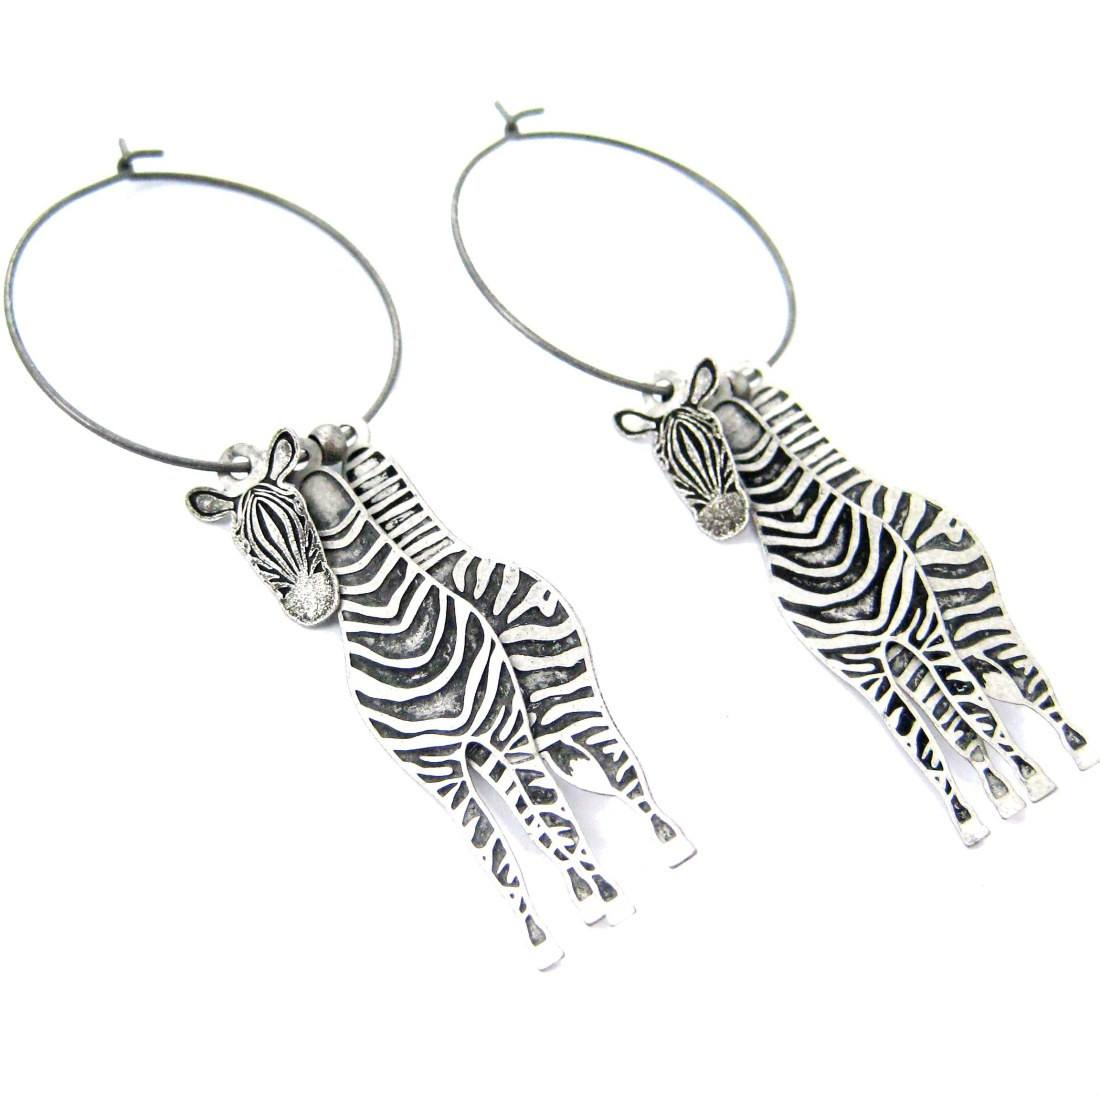 Unique 3D Zebra Horse Shaped Three Part Dangle Earrings in Silver